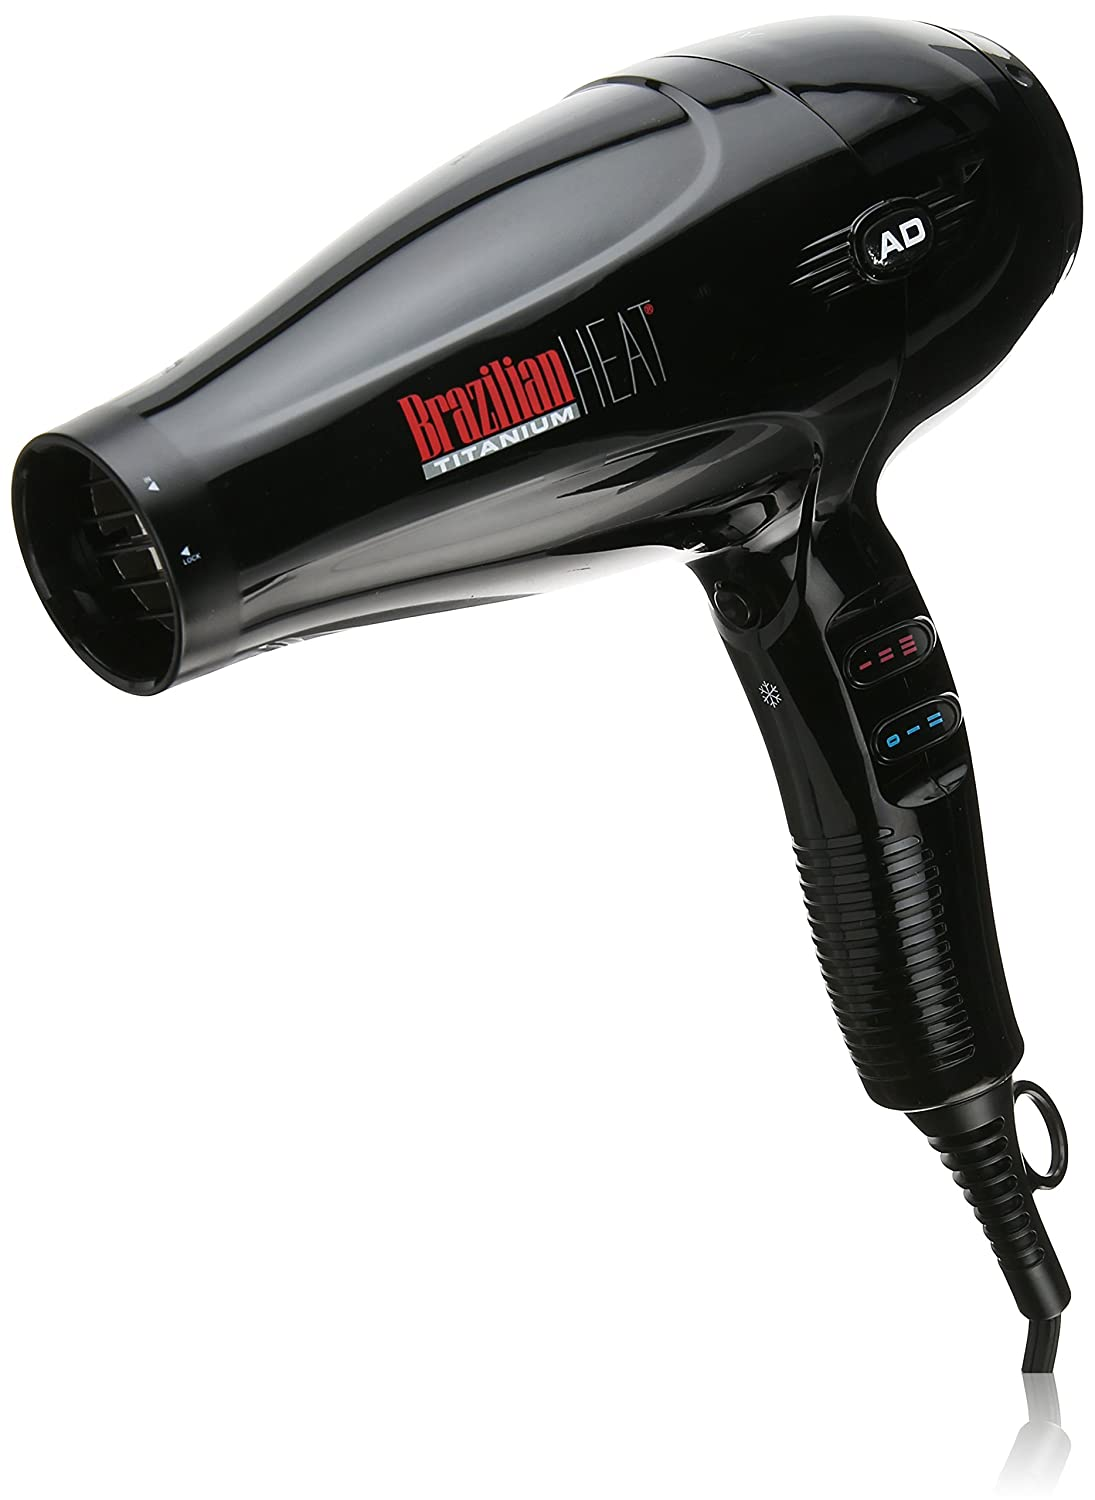 Brazilian Heat BBH3202 Brazilian Heat After Dark Titanium Ionic Keratin Safe Hair Dryer, 1900 Watt